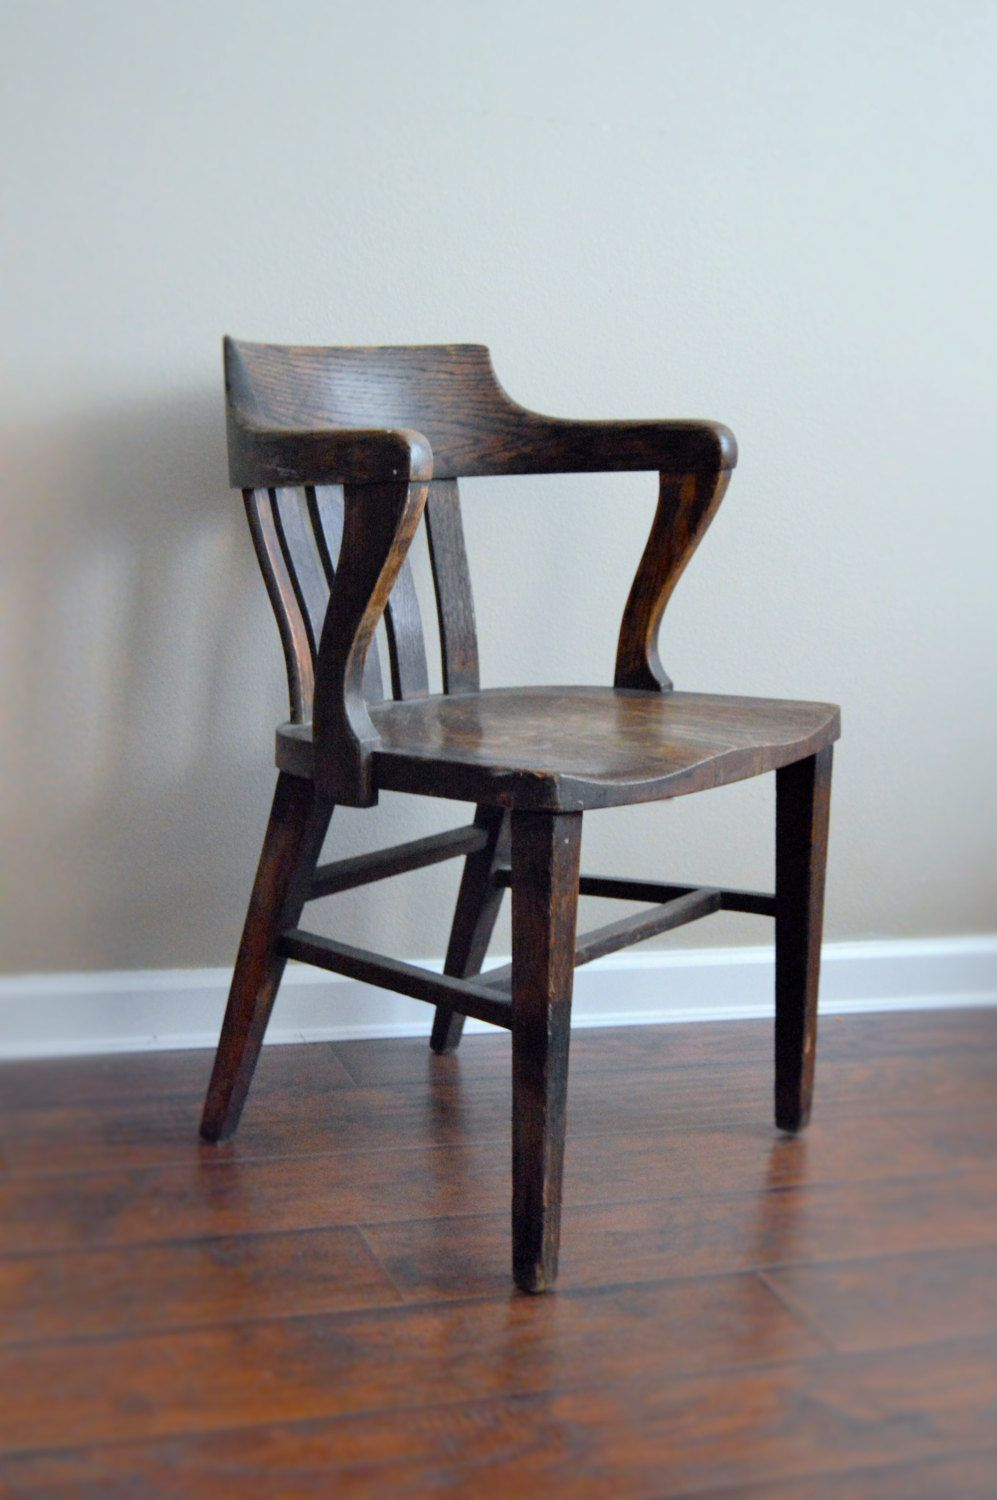 Bankers chair leather - Antique Bankers Chair Antique Oak Office Jury Court Vintage Office Chair Library Primitive Rustic Chair Accent Chair Desk Chair